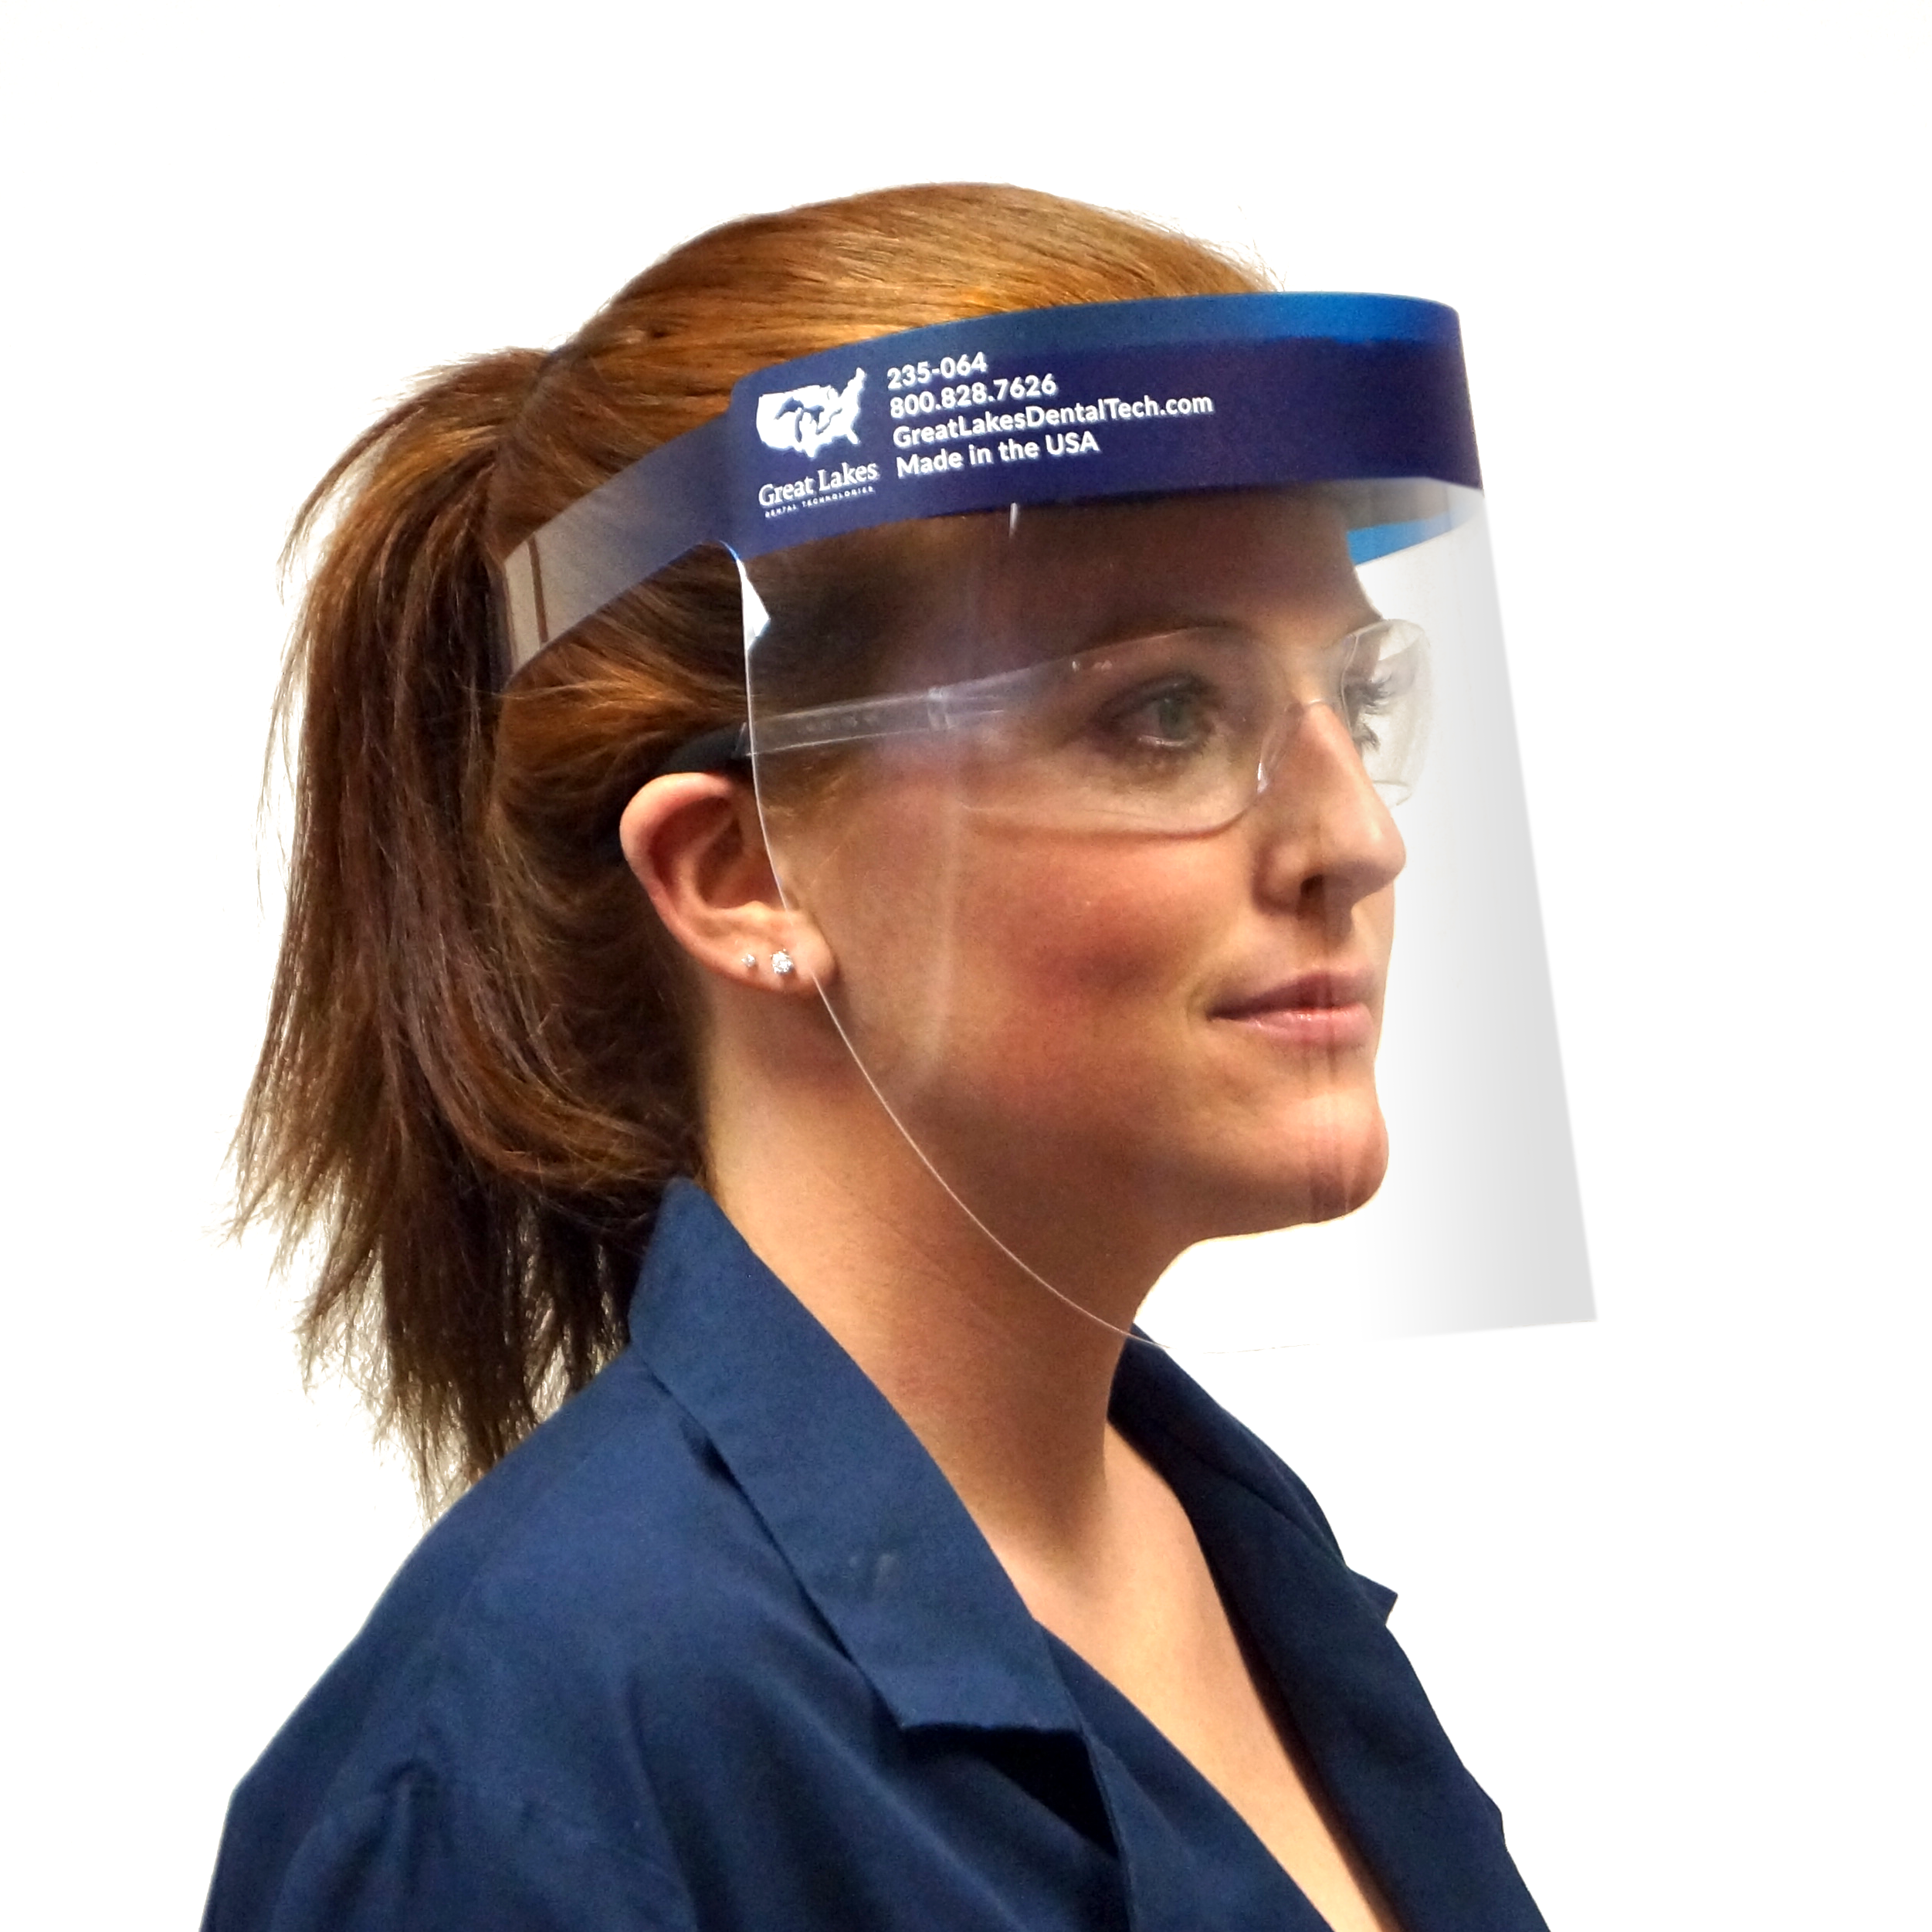 Great Lakes FACE SHIELDS